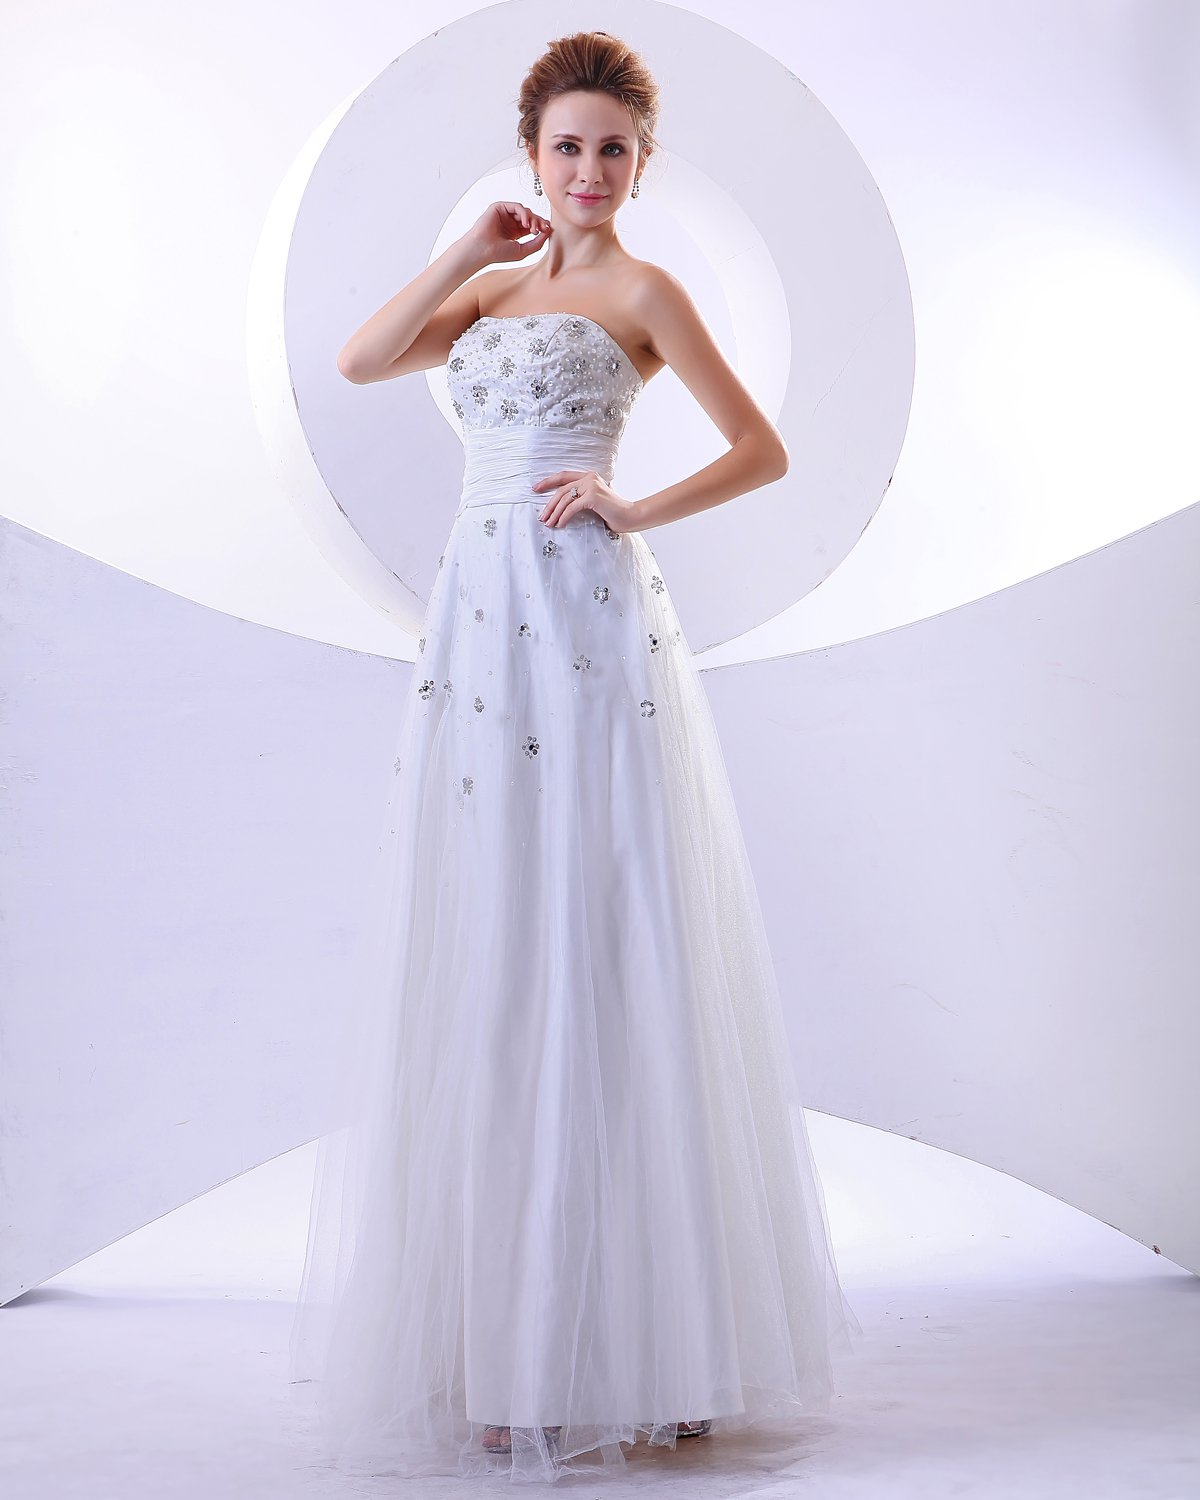 Satin Tulle Ruffles Sleeveless Beading Empire Wedding Dress